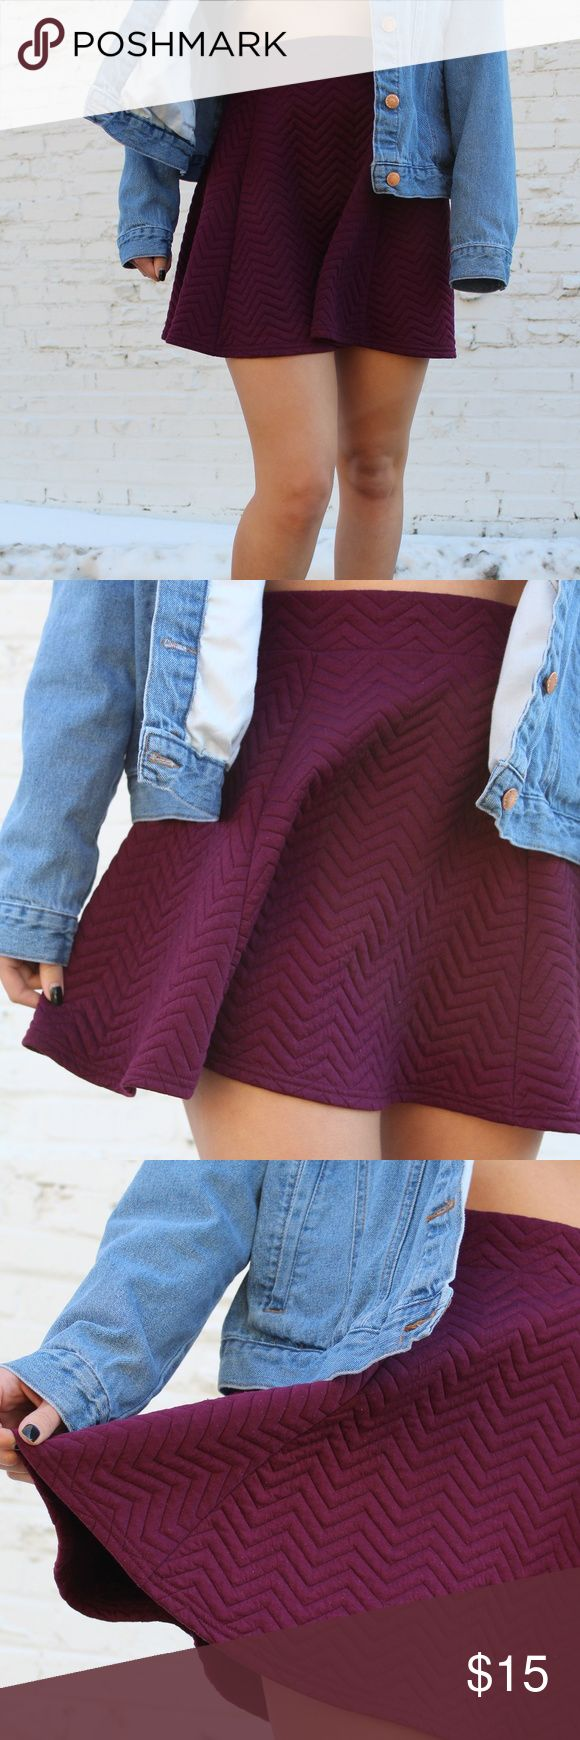 H&M Plum Skirt Want to wear a fun skirt during the colder seasons? This plum skirt from H&M is the perfect combination of cute and cozy. The breathable fabric  features a pleated design that is comfortable and easy to wash. H&M Skirts